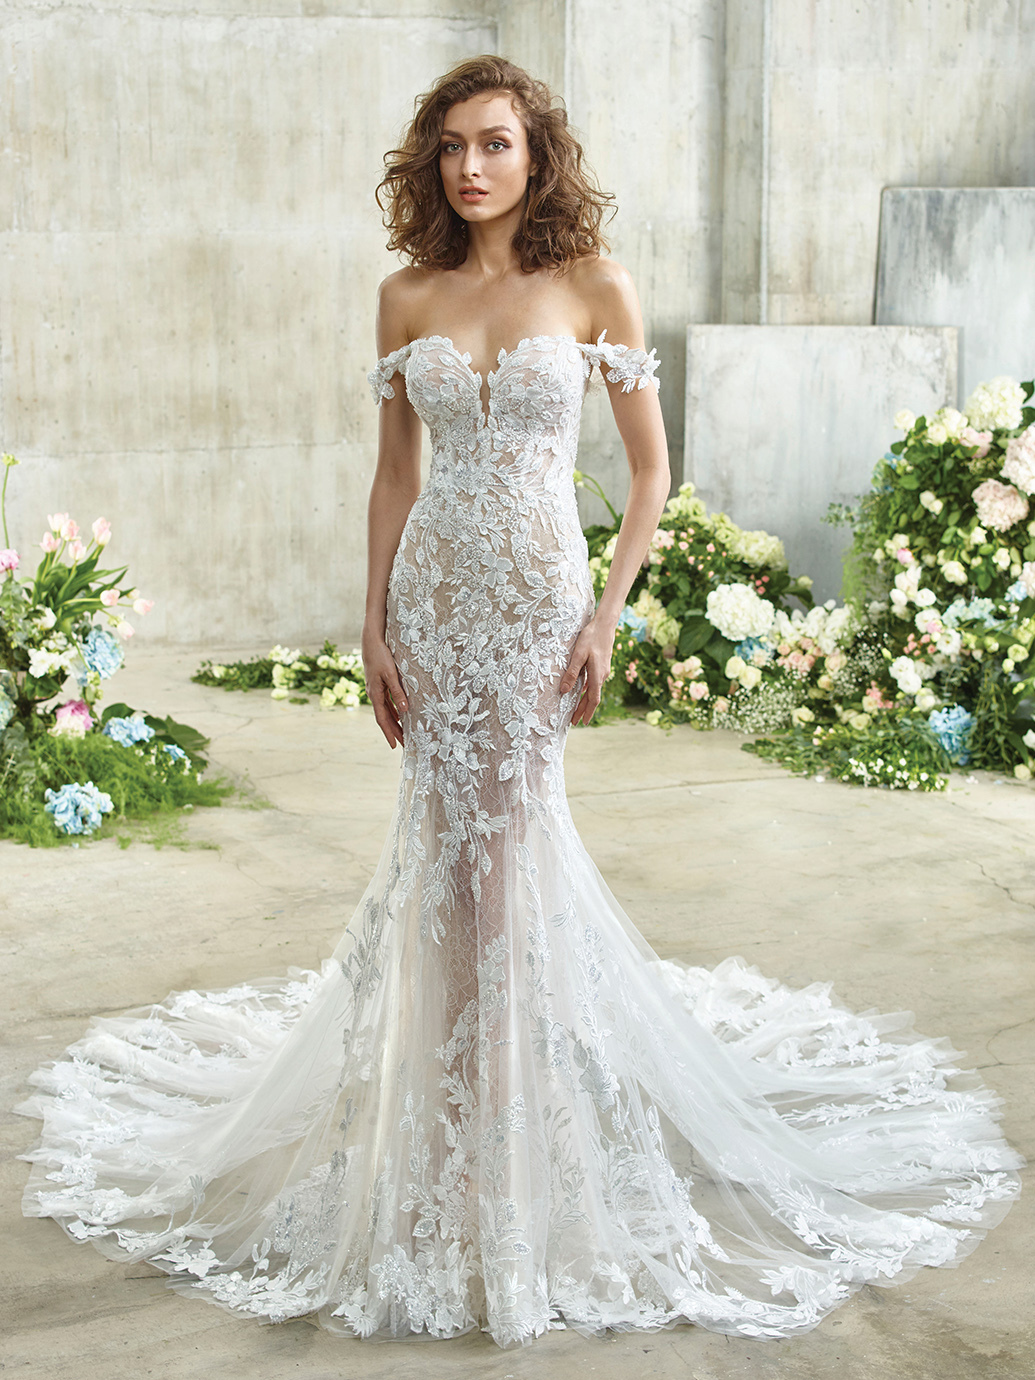 The picture of beauty and romance. Etta features the sweetest off-shoulder beaded floral lace straps that are actually detachable! The most gorgeous blend of beaded floral lace, Chantilly lace, and tulle flows harmoniously throughout the gown all the way down to the stunning train for the dreamiest waterfall effect.